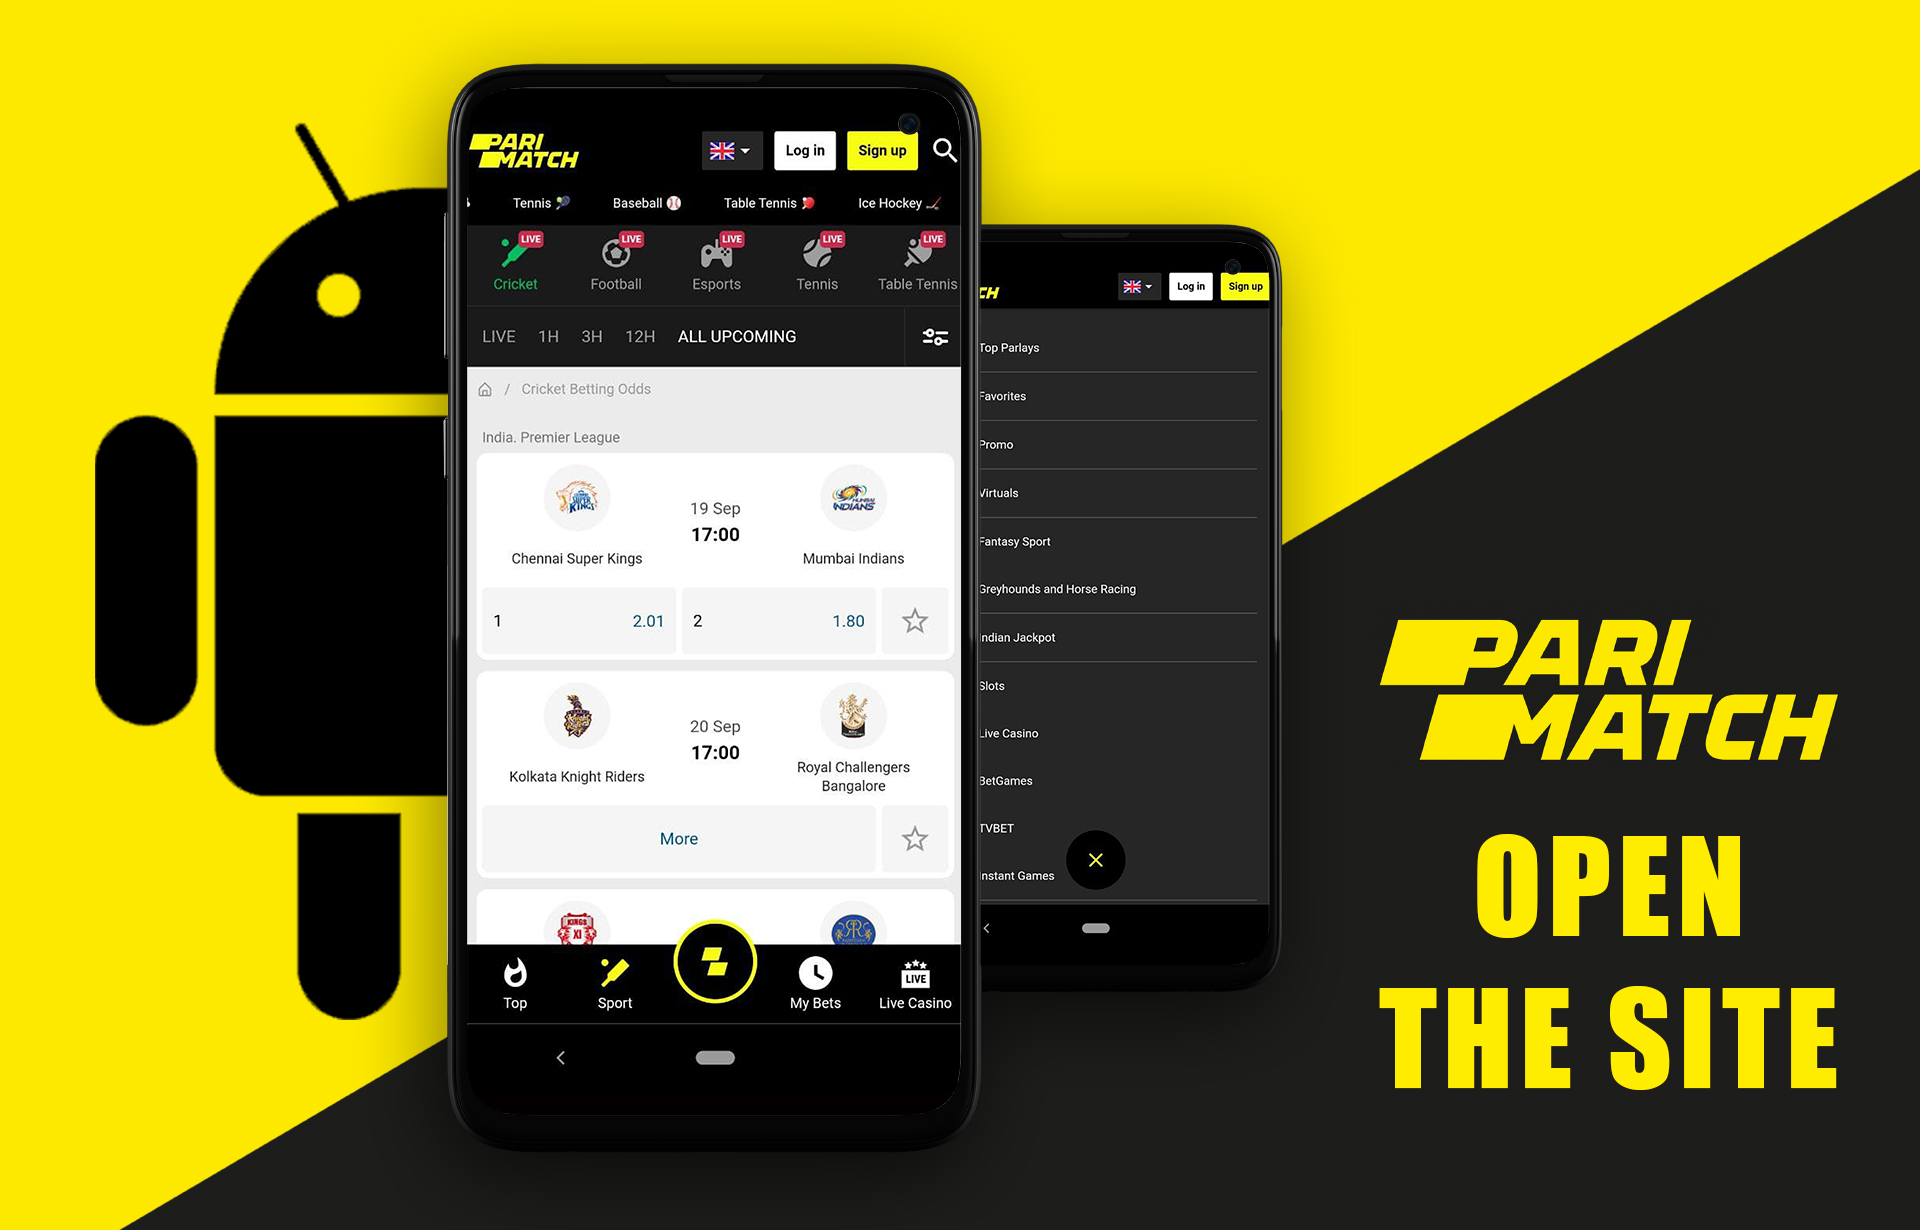 Open the official site of Parimatch in a mobile browser.